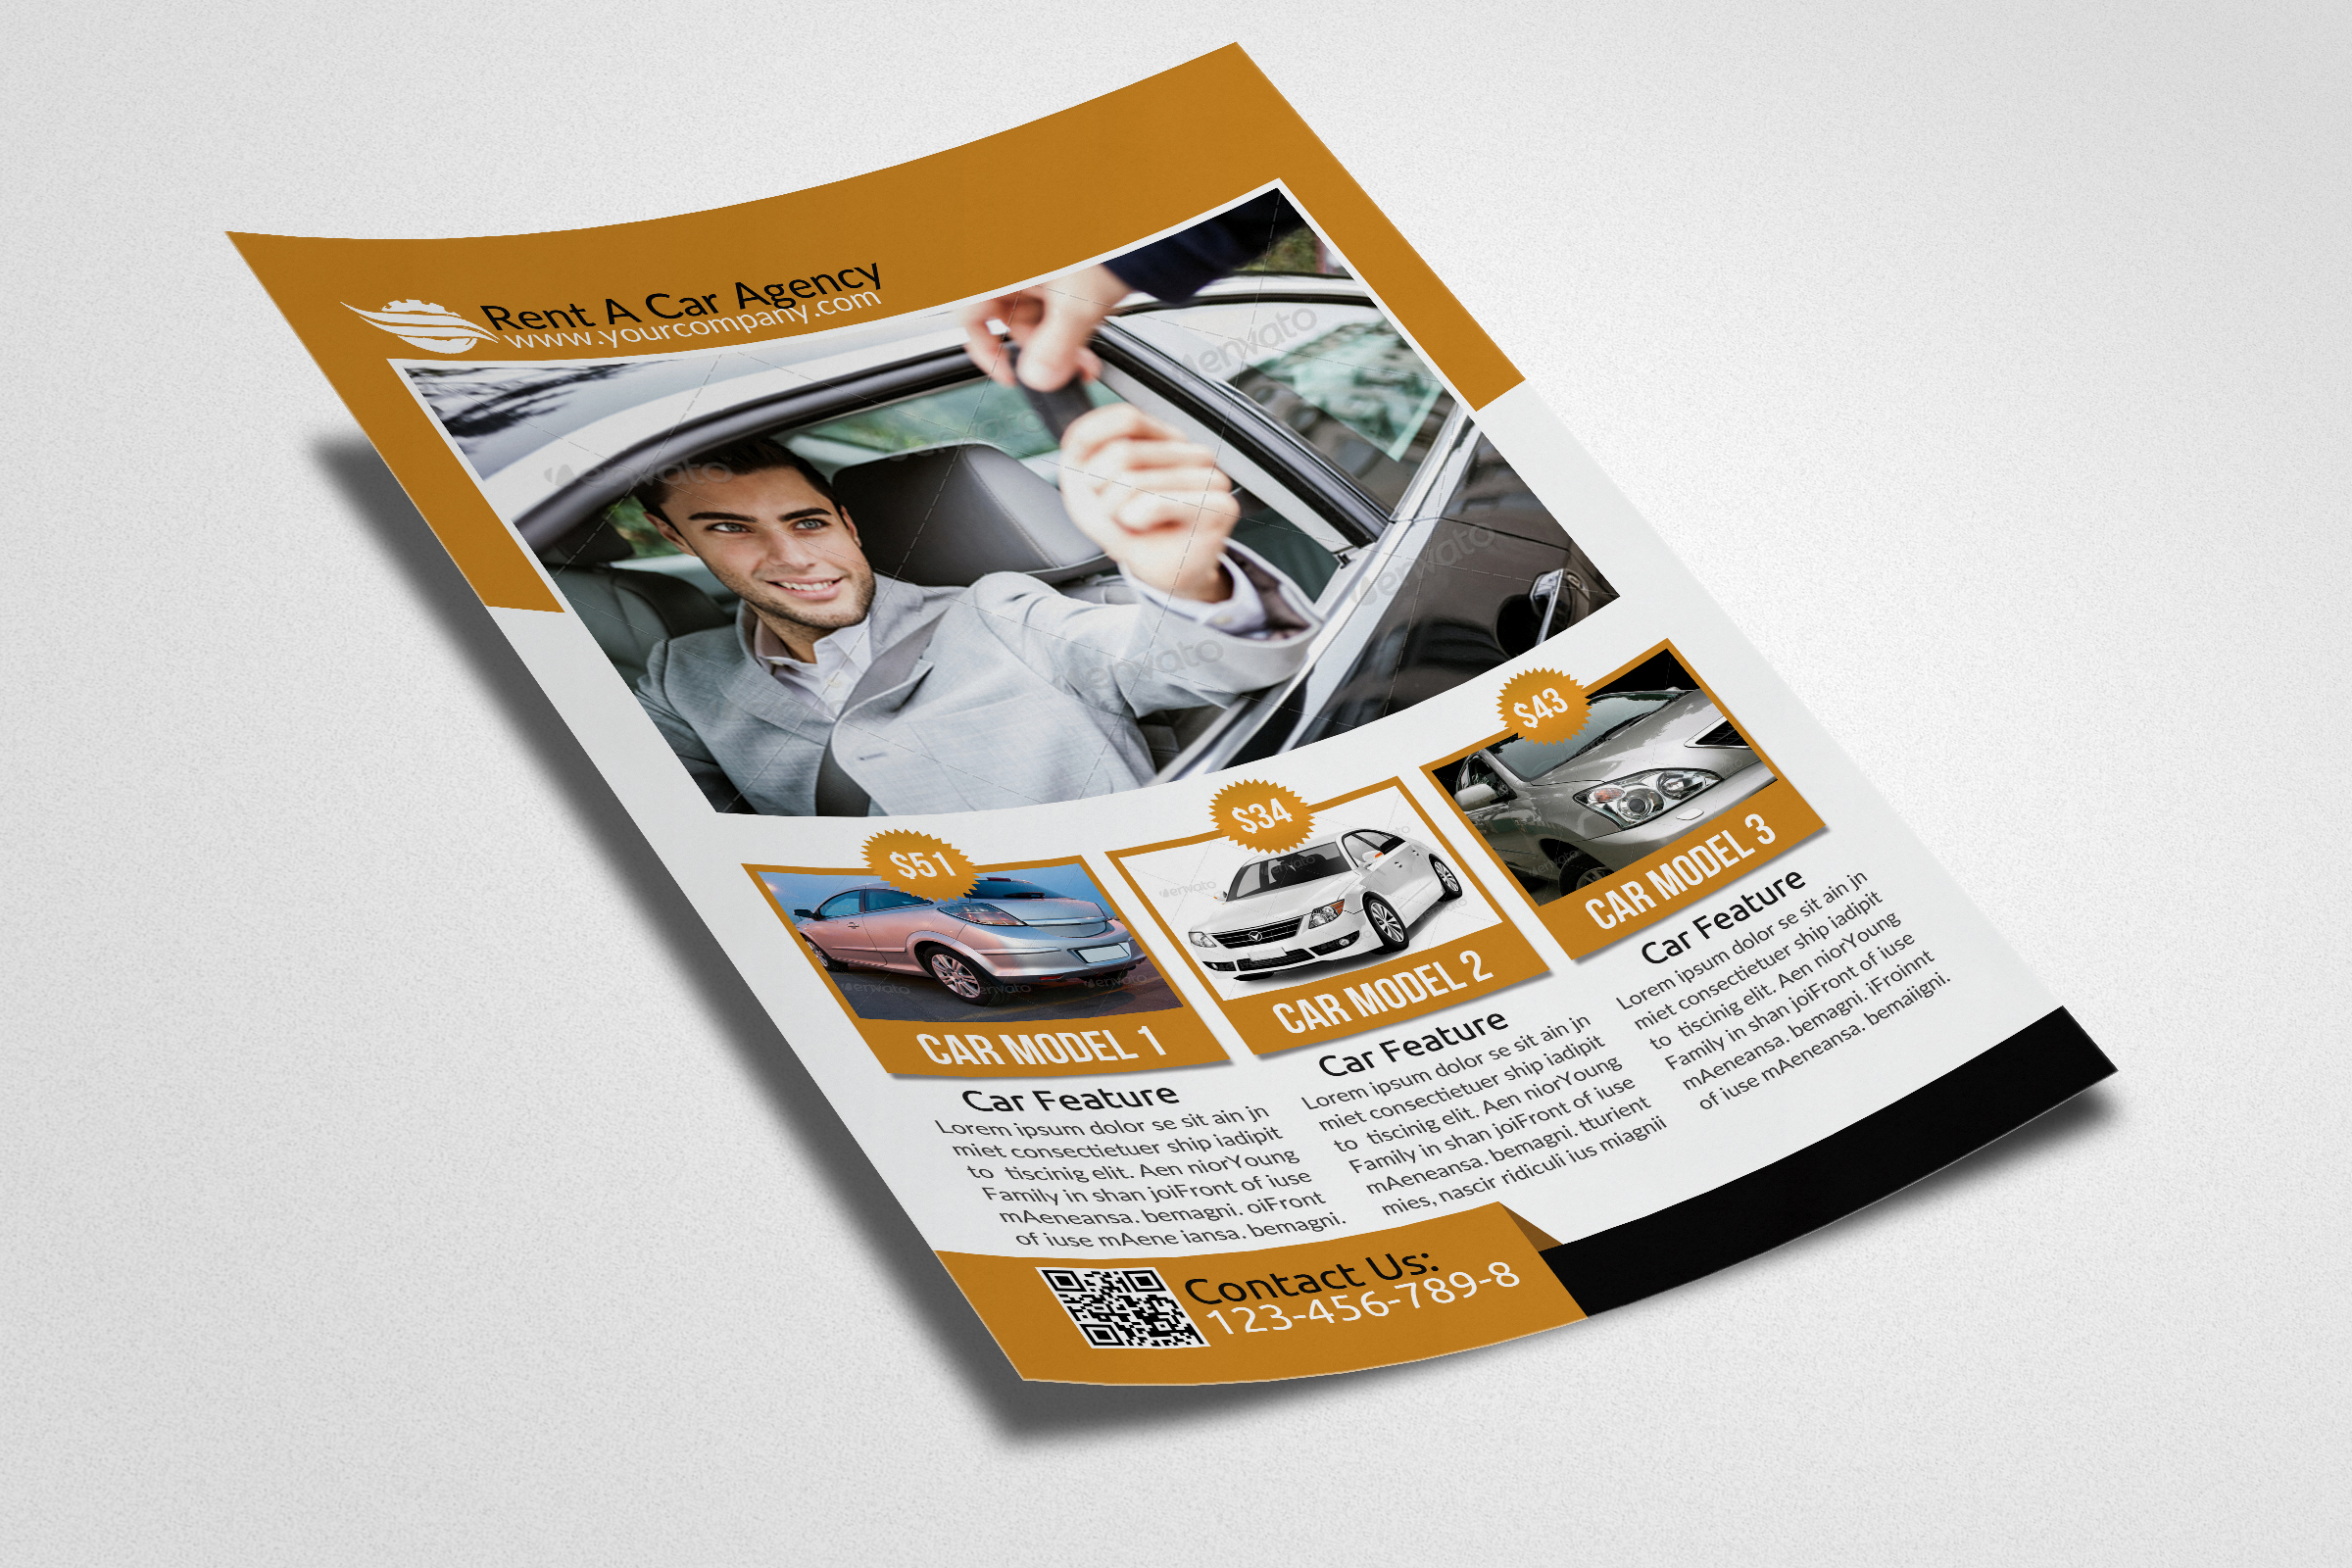 Rent A Car Flyer example image 2